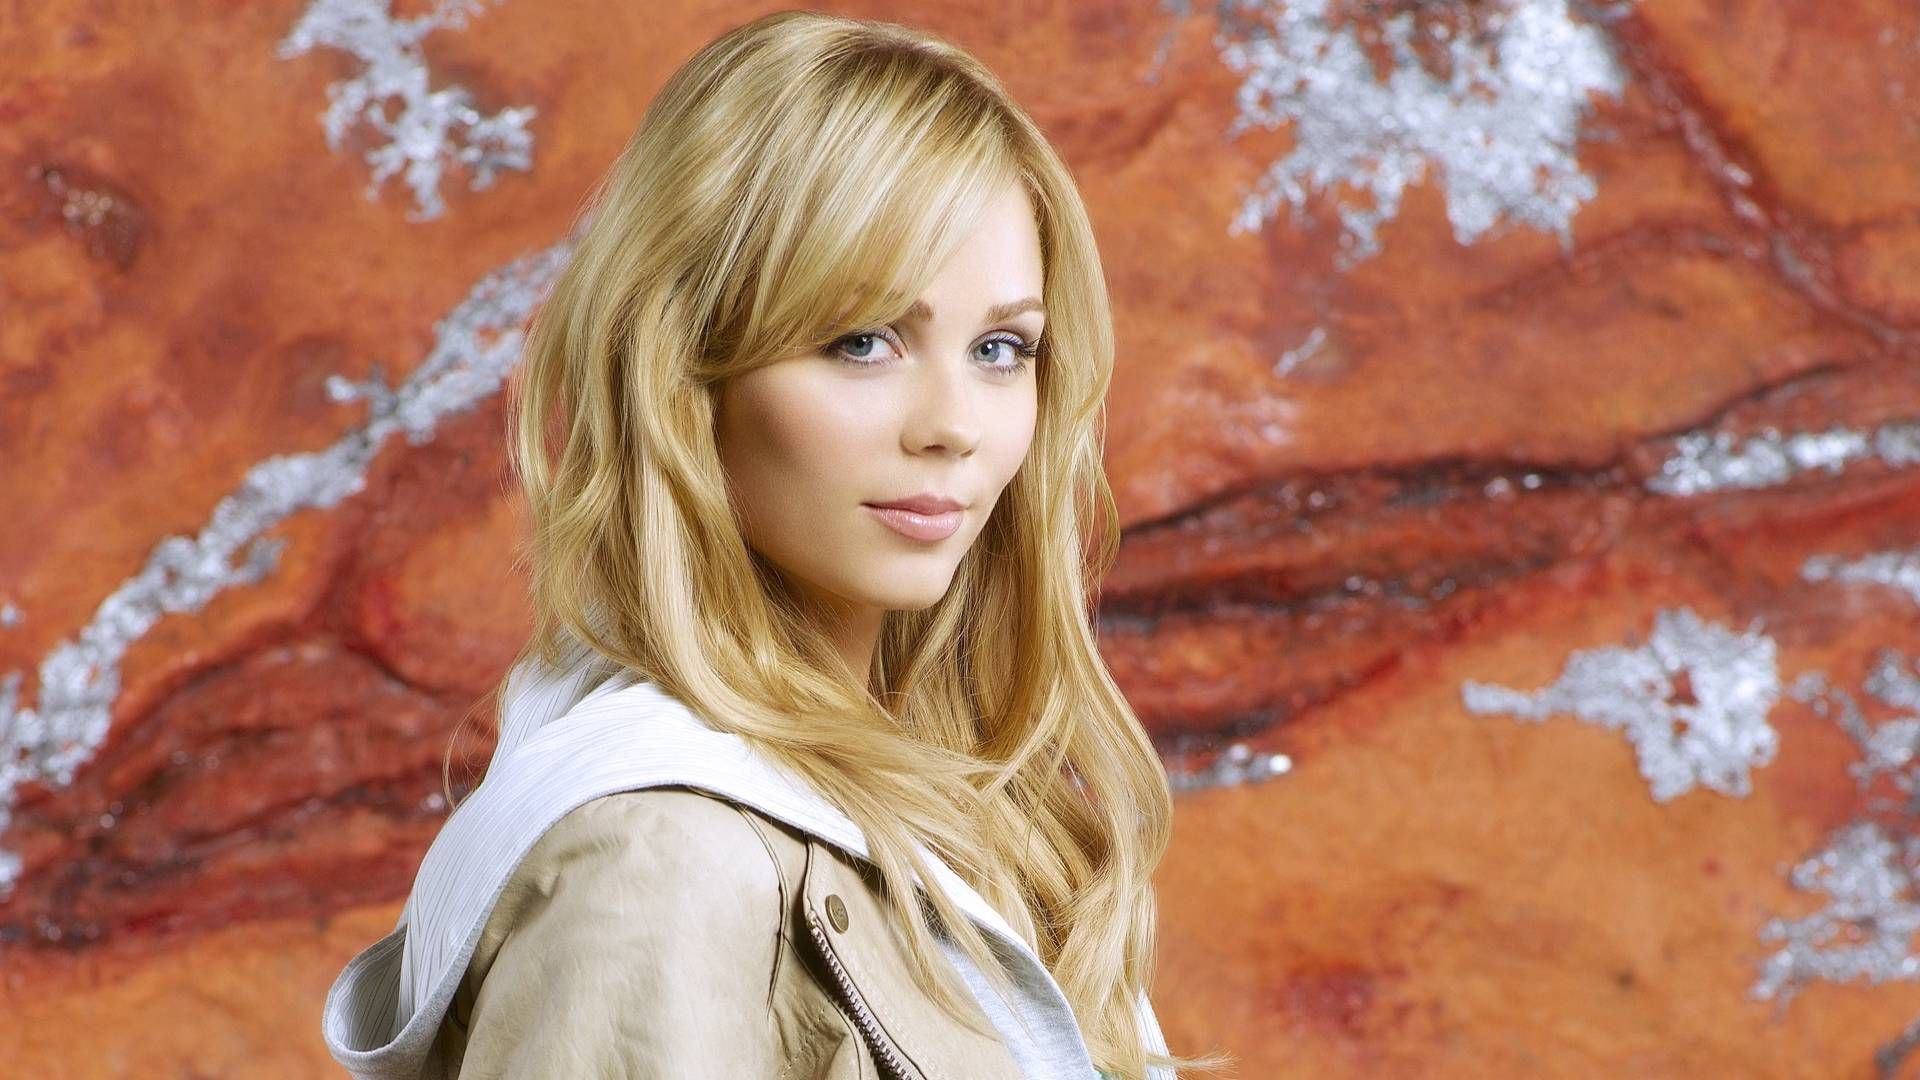 Hd Technology Wallpapers 1080p 17 Laura Vandervoort Wallpapers Hd Free Download